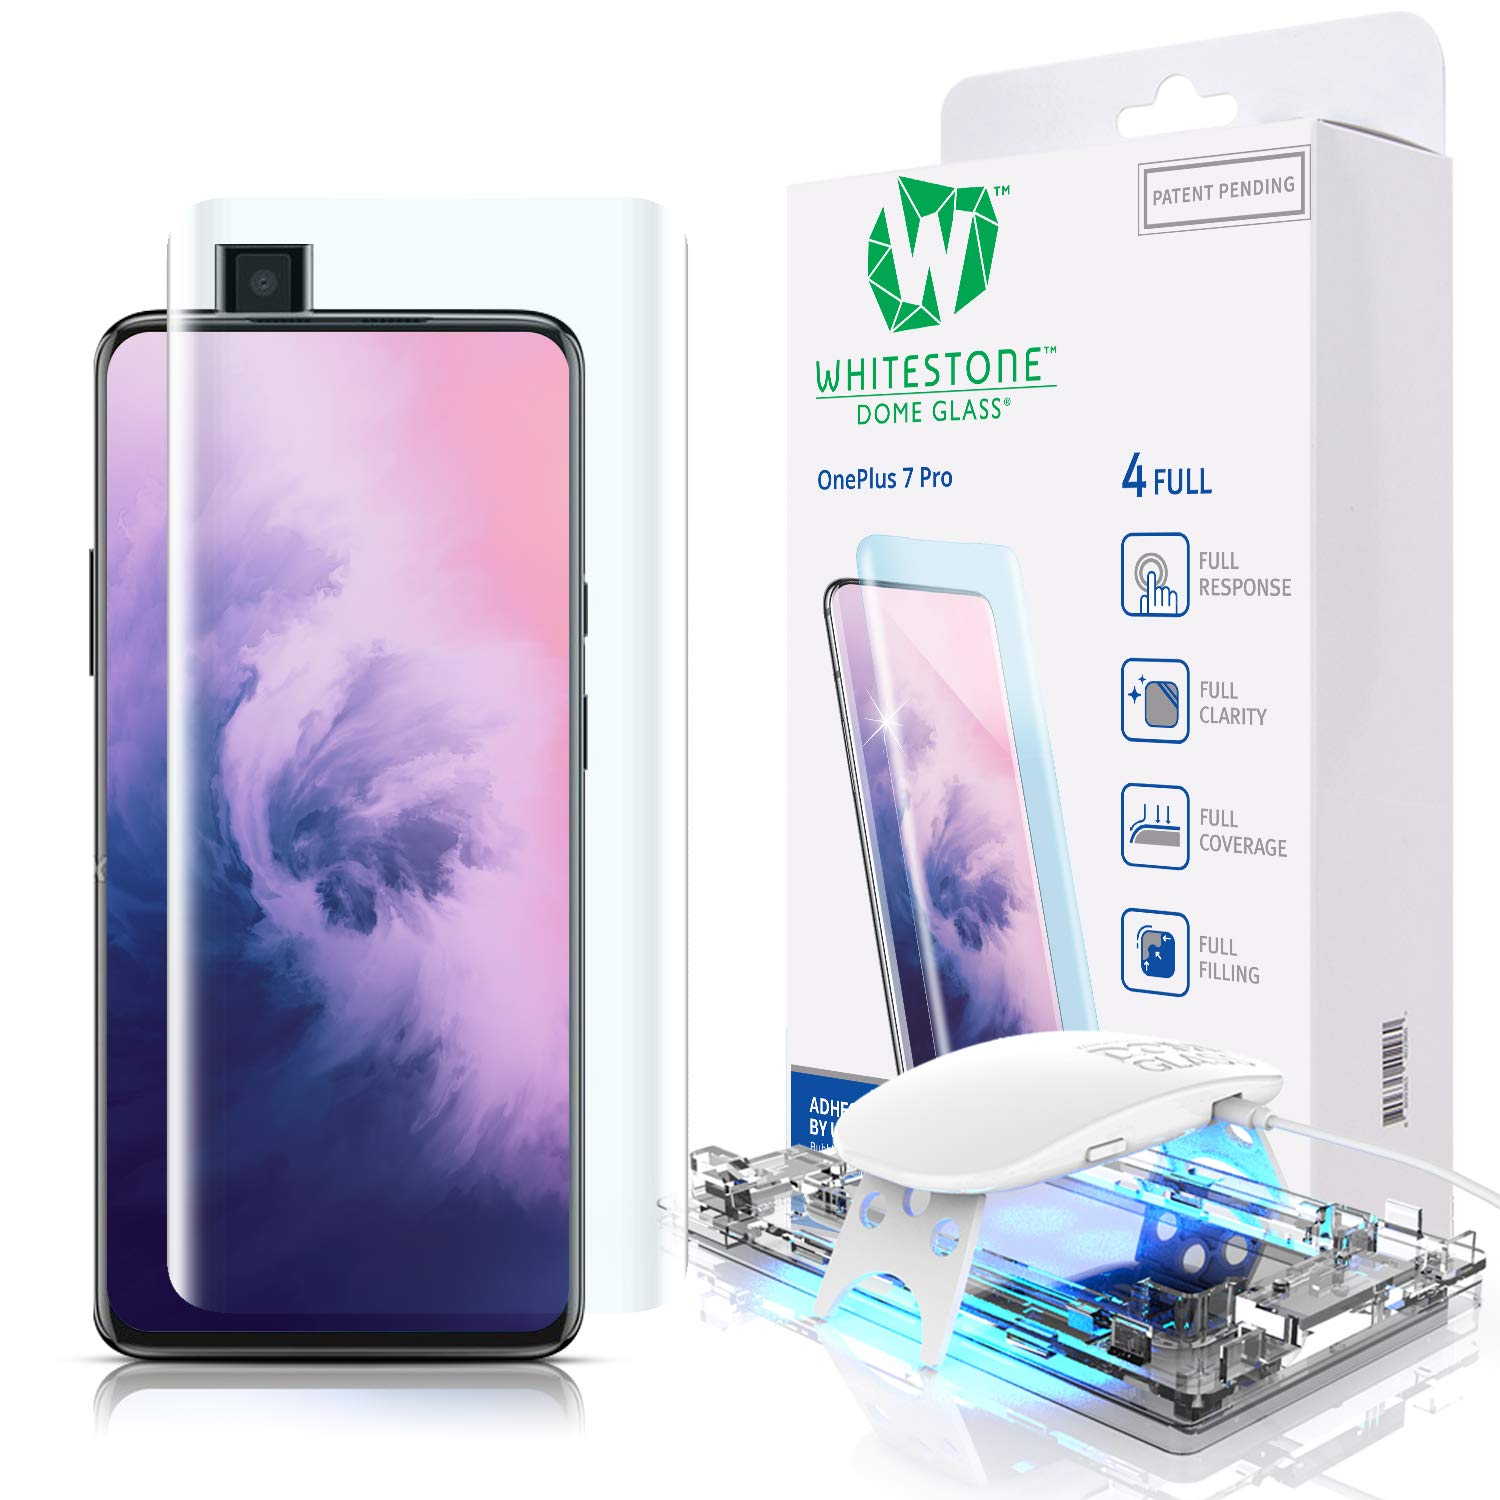 Tempered Glass Screen Protector for OnePlus 7 Pro and 7 Pro 5G, [Dome Glass] Full 3D Curved Edge Exclusive Solution, Easy Install Kit by Whitestone for OnePlus 7 Pro and 7 Pro 5G - 1 Pack by Dome Glass